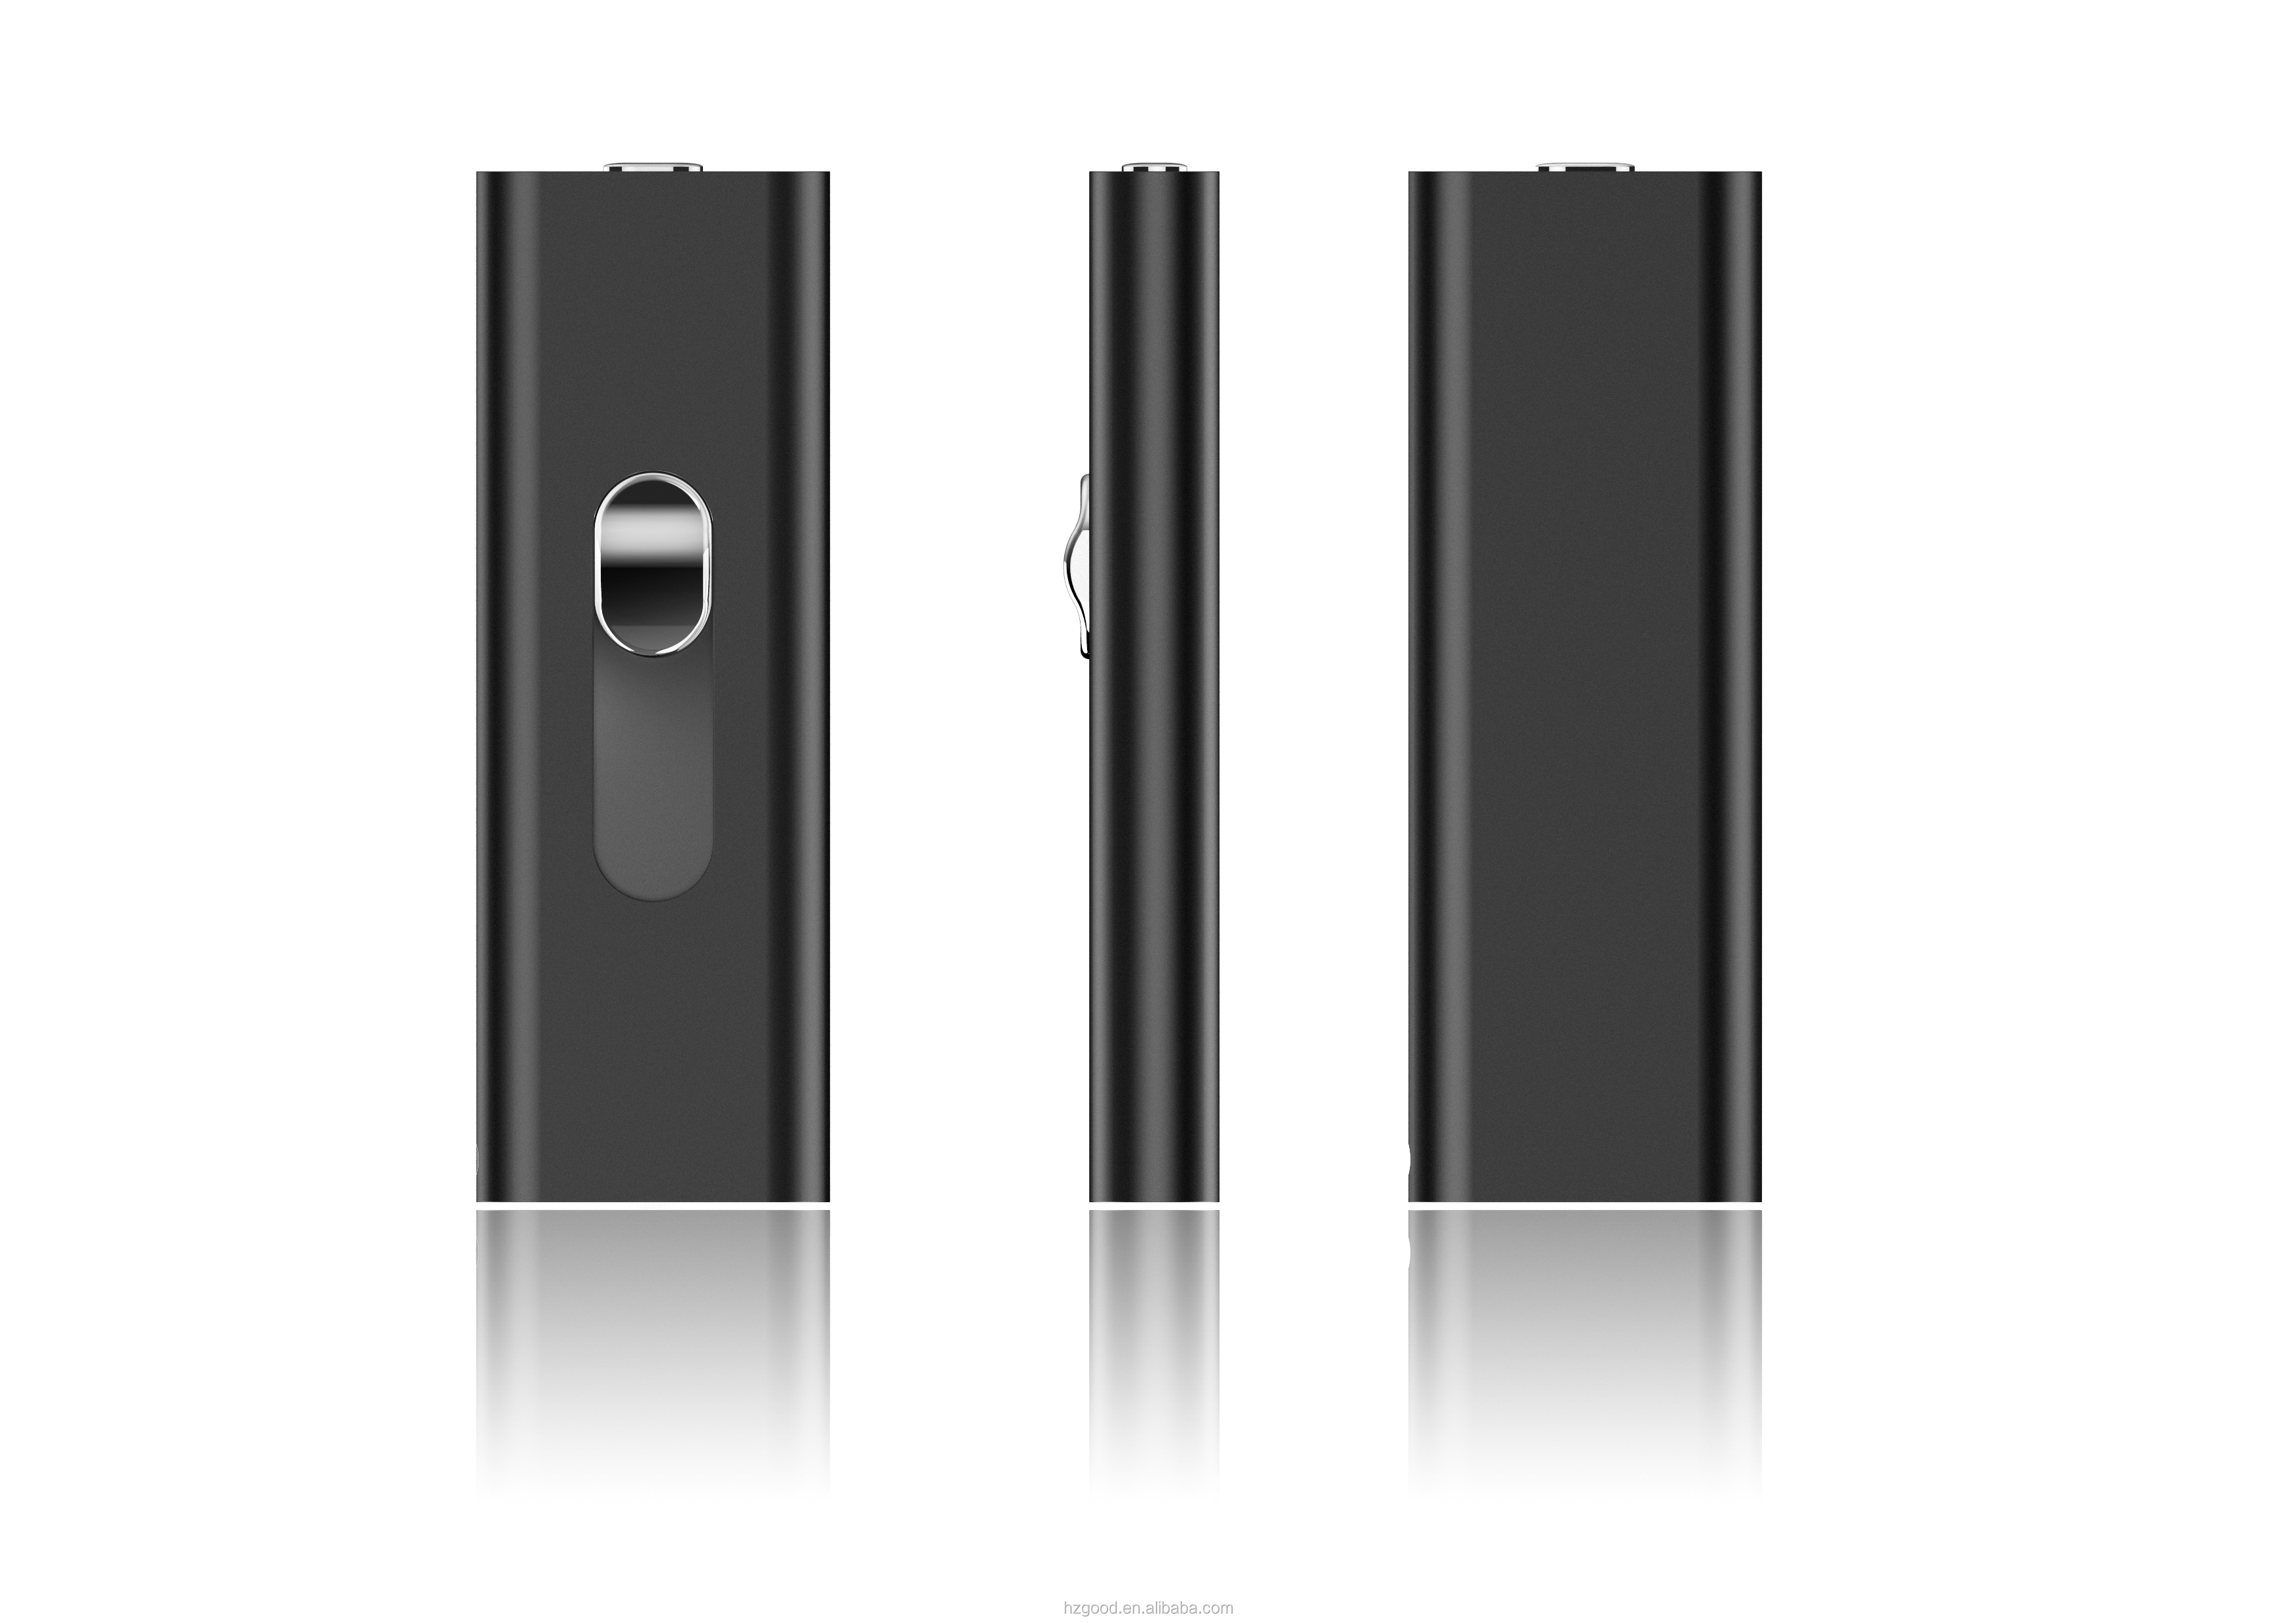 192Kbps USB Voice Recorder Mini Digital Voice Activated Audio Sound Recorder with two Slots for PC and Anroid Smartphone